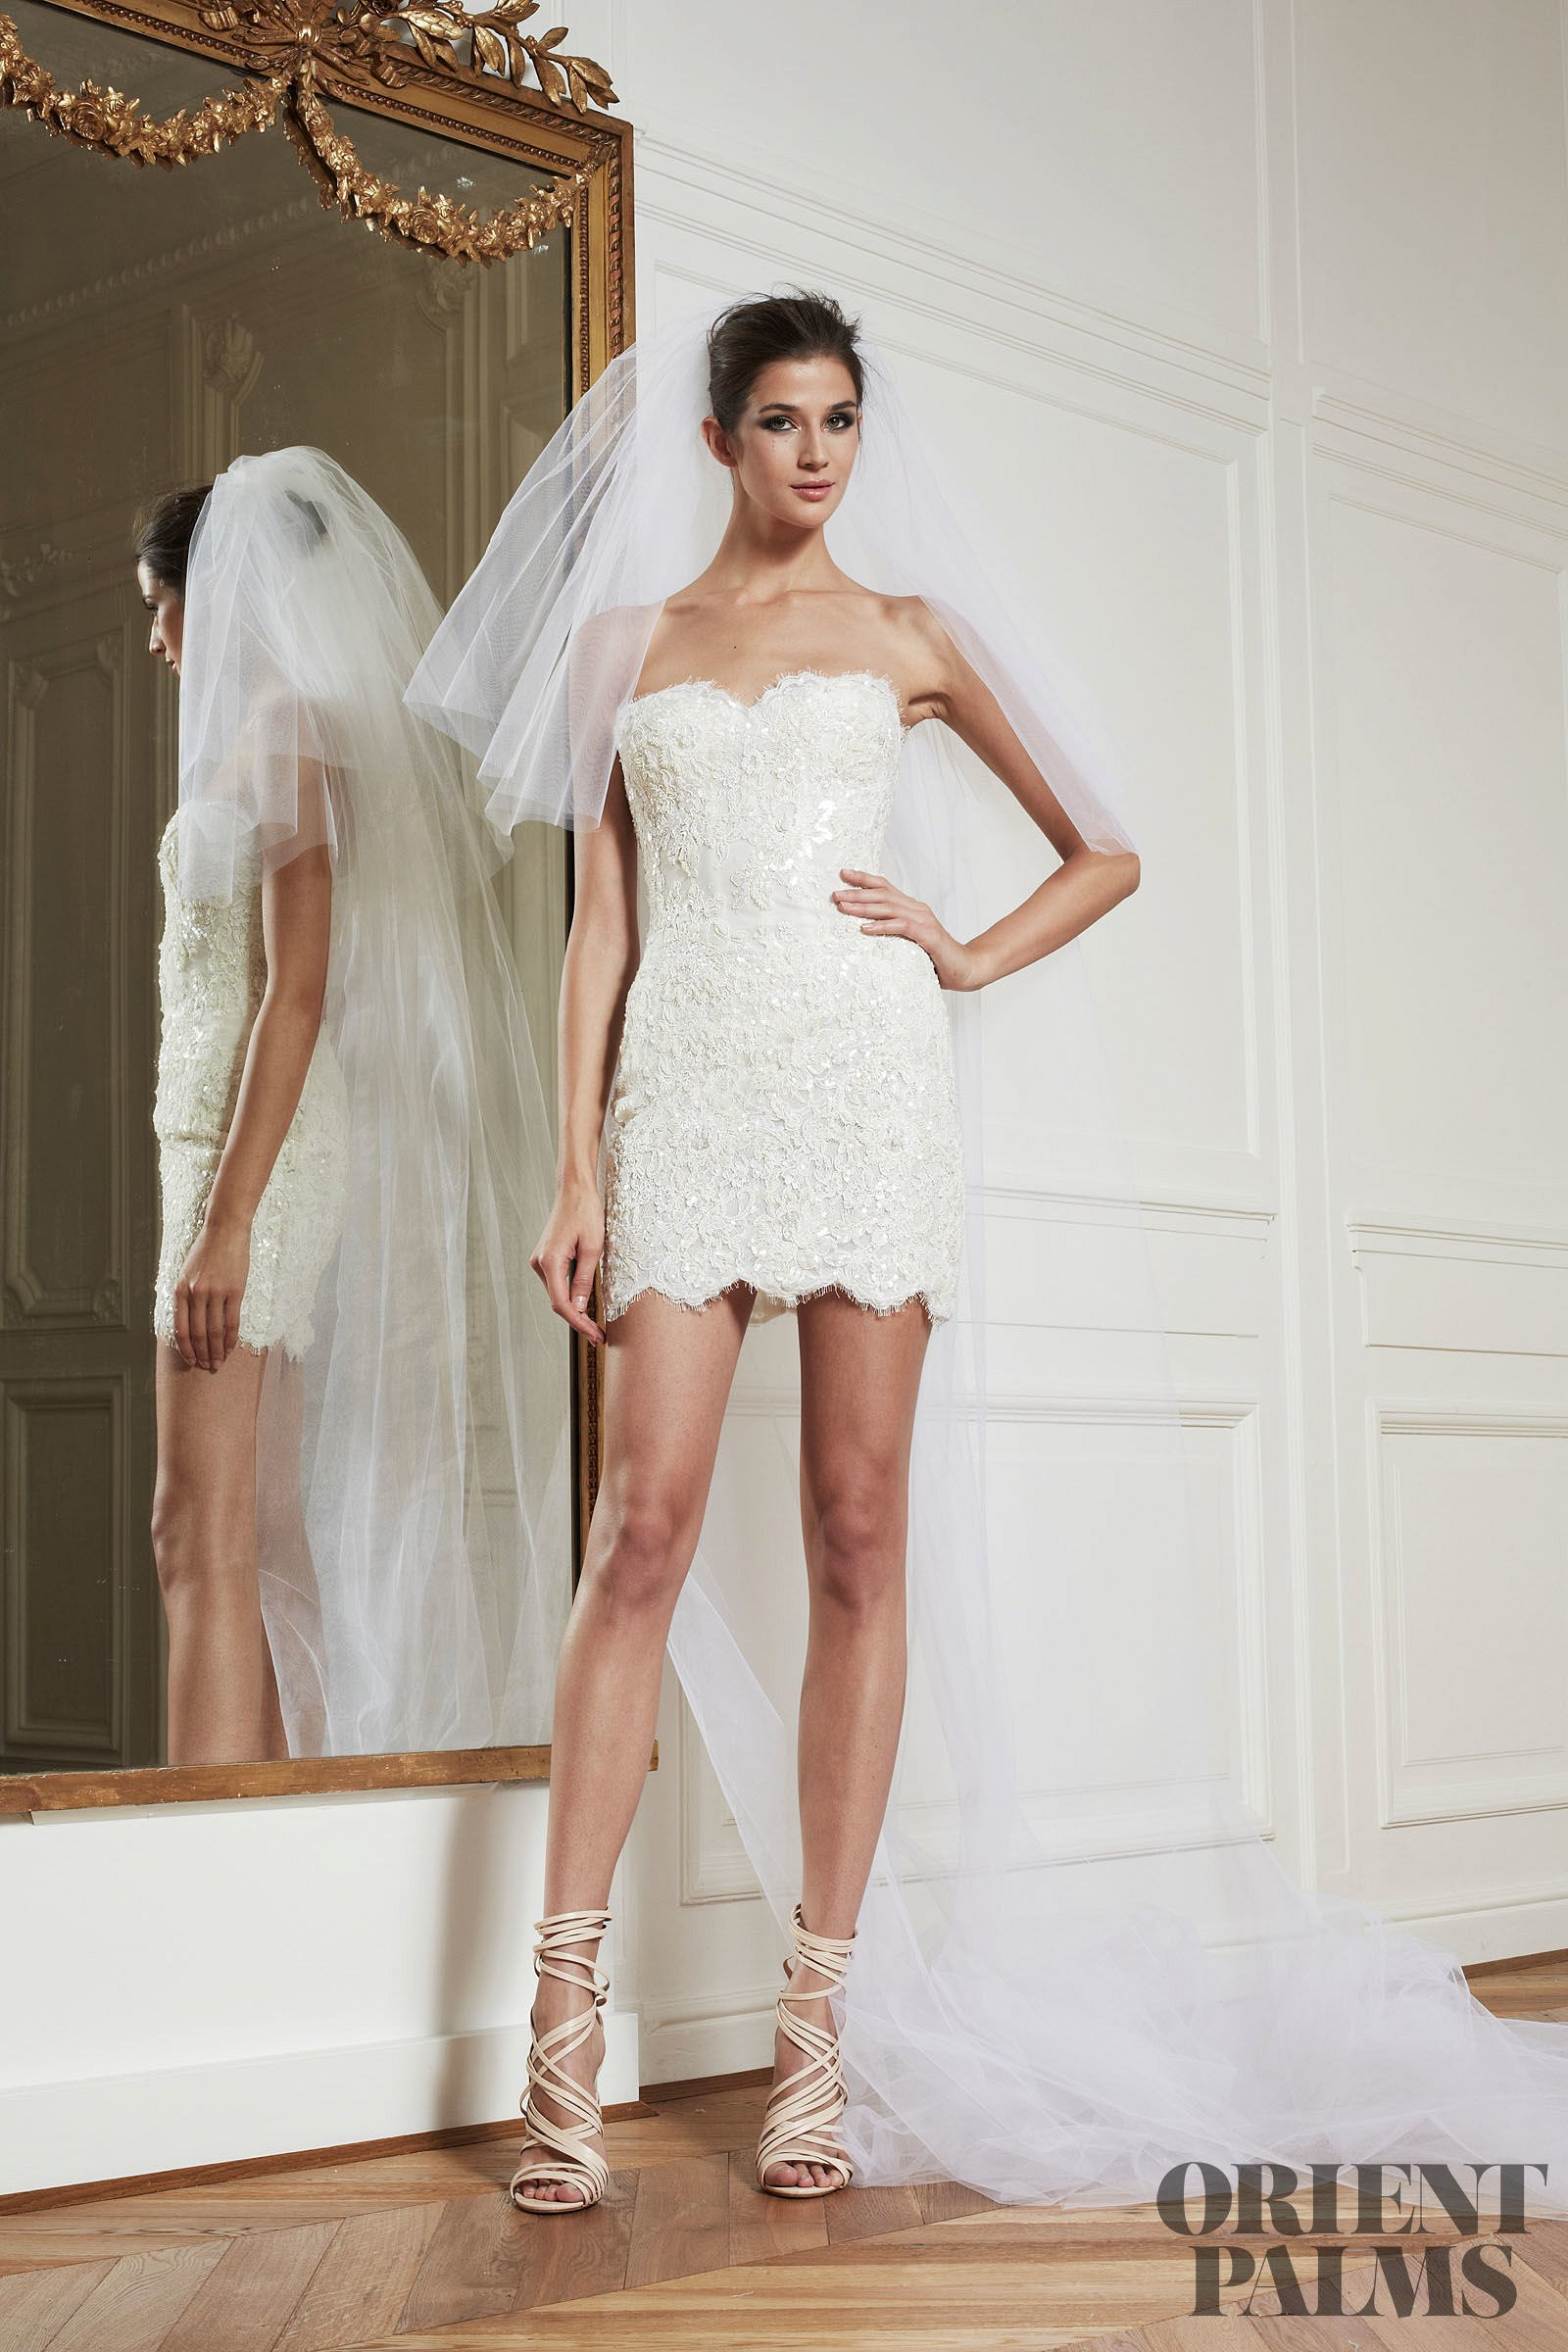 The Zuhair Murad 2013 SpringSummer Bridal Collection Excels in the Detail